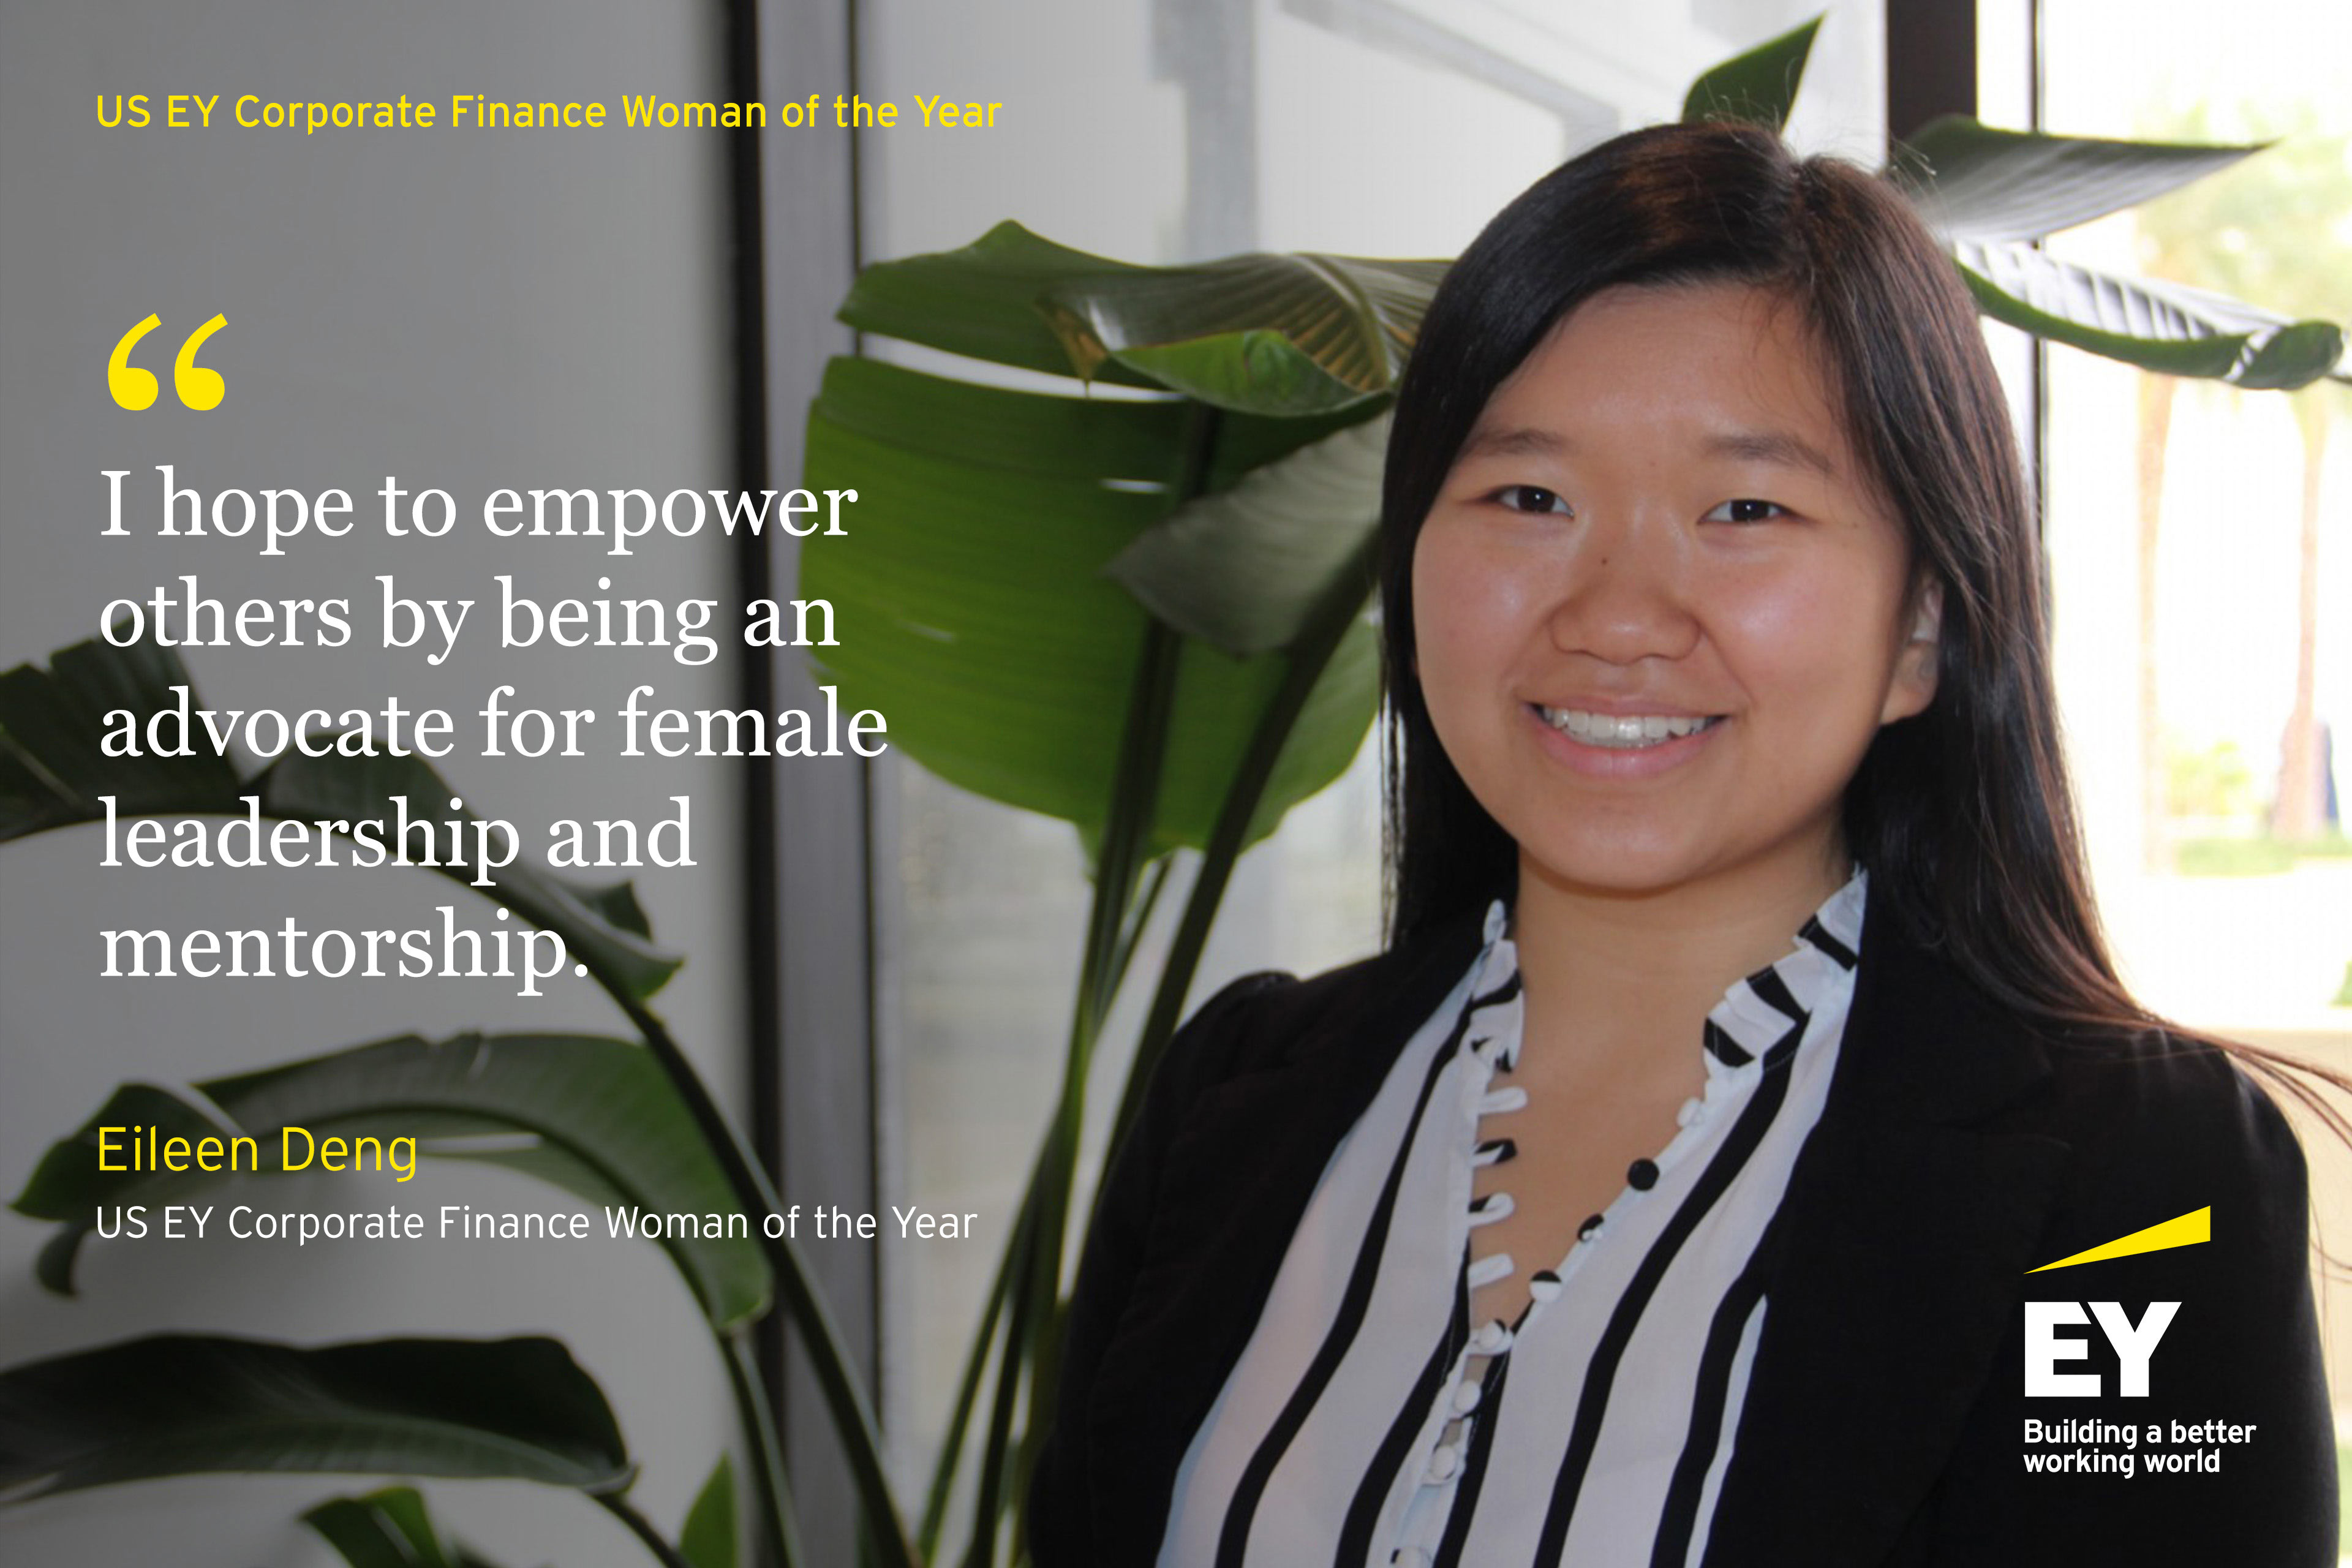 US EY Corporate Finance Woman of the Year - Eileen Deng